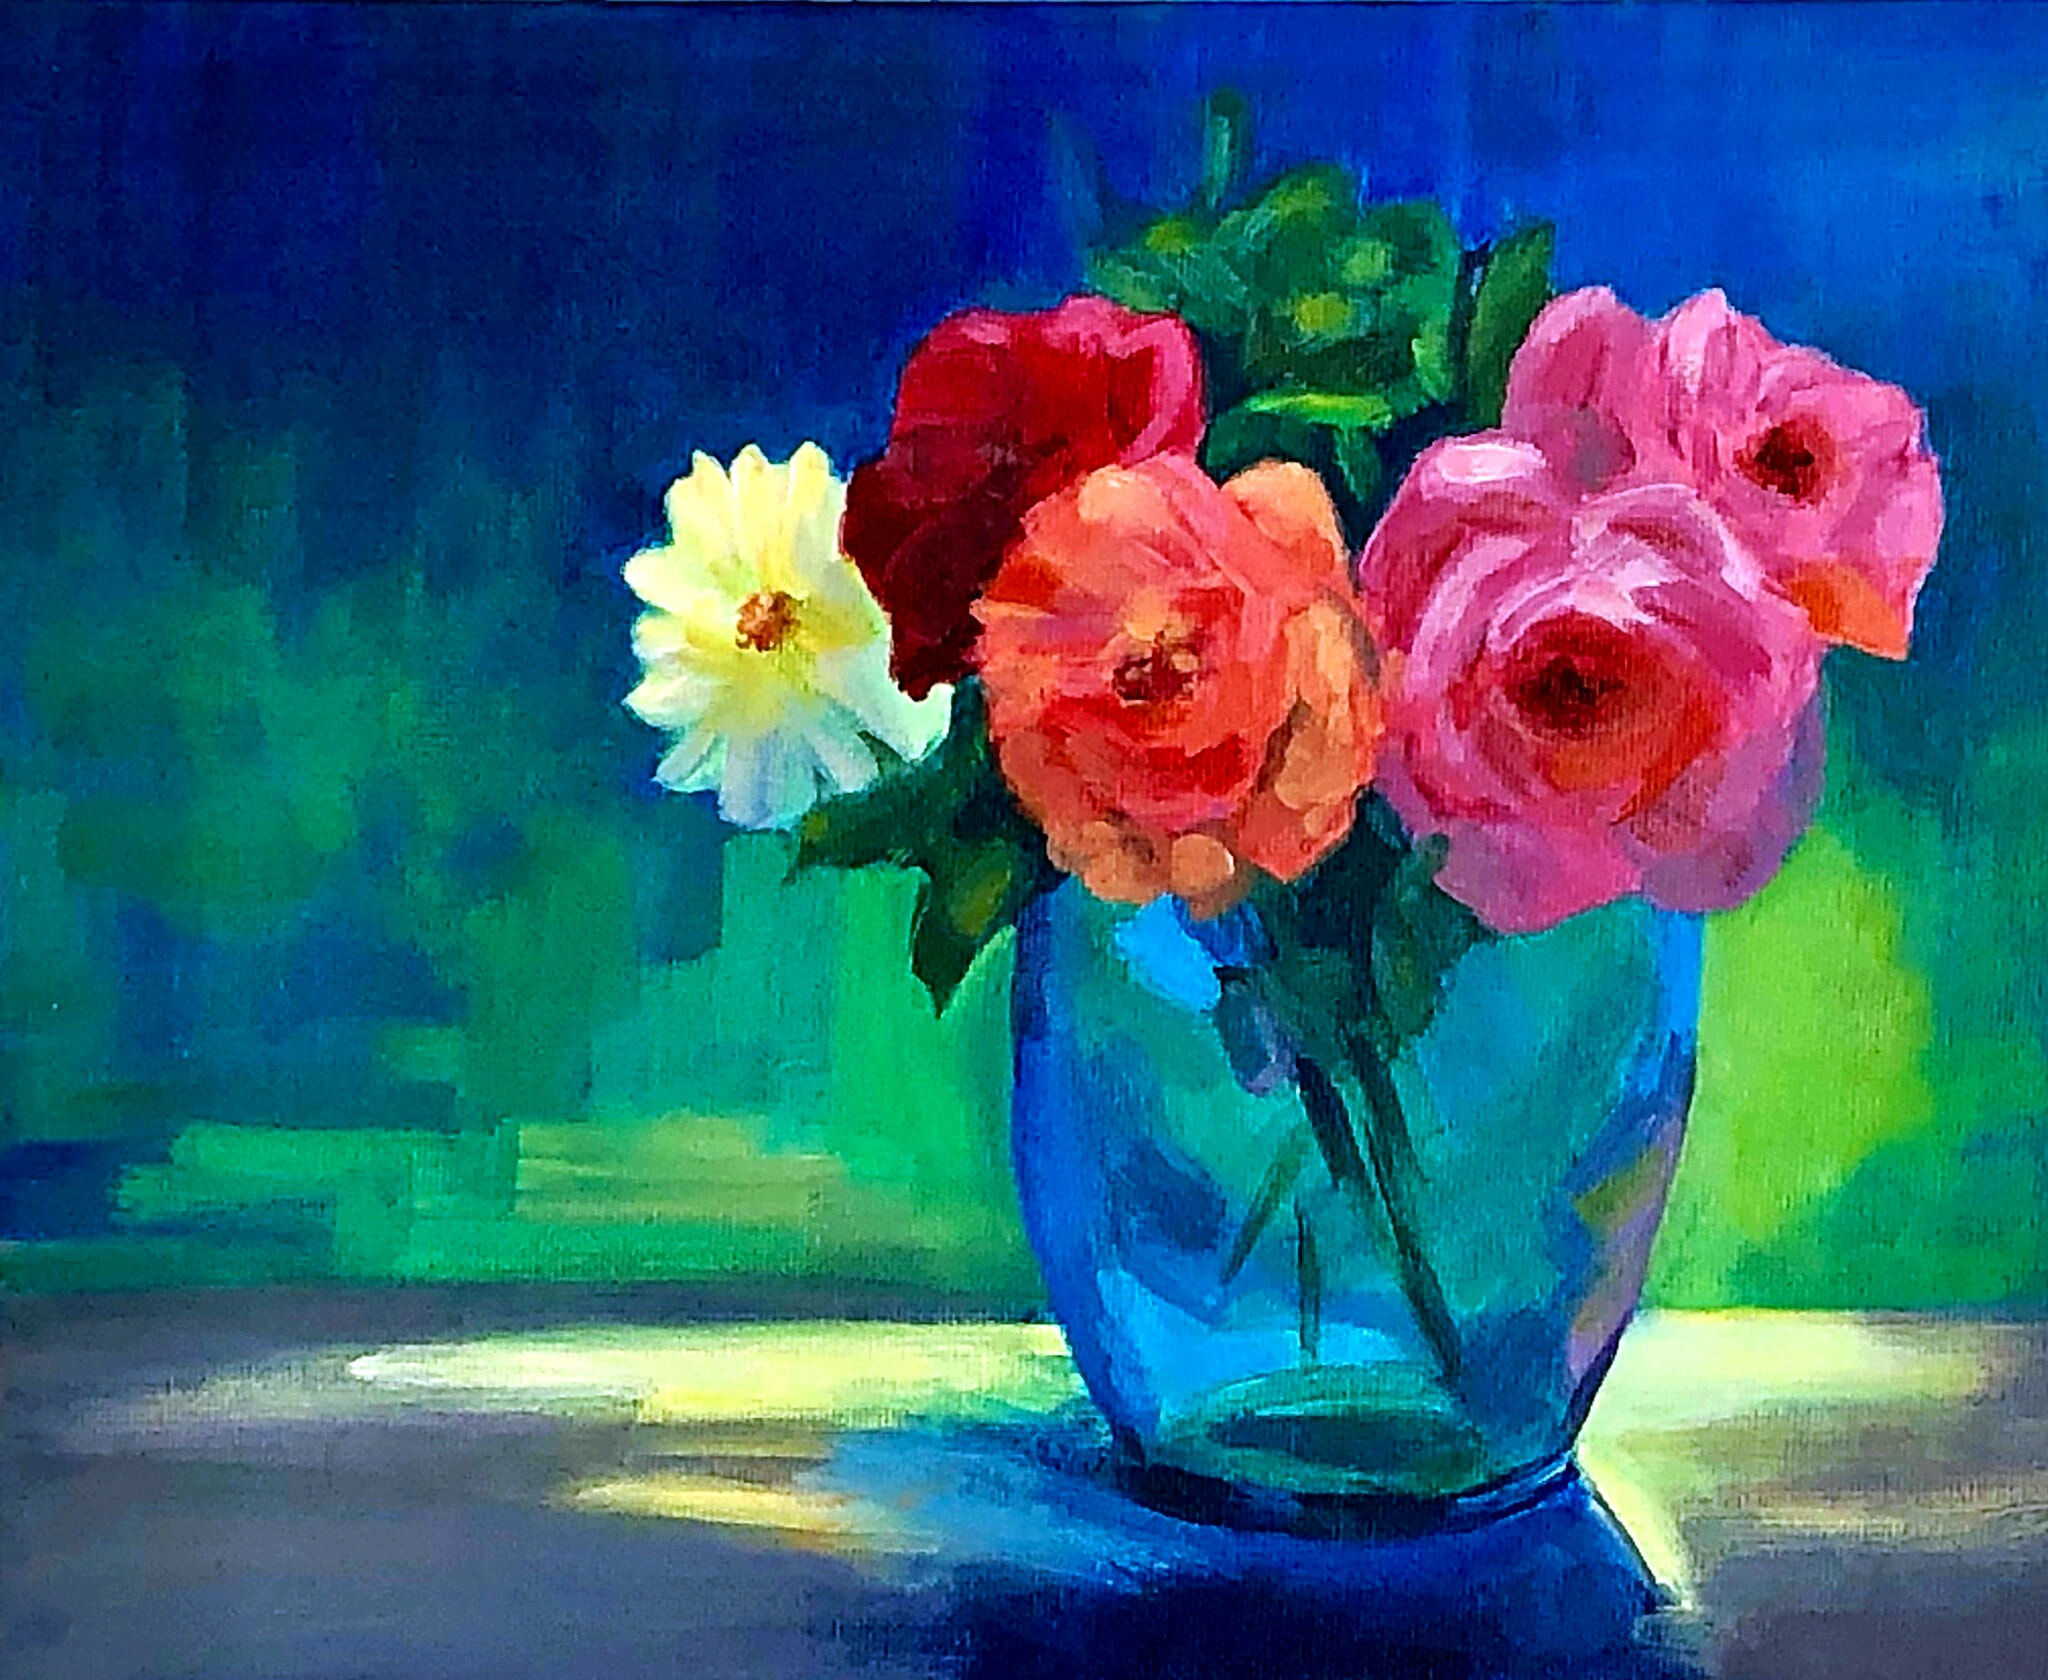 acrylic painting of roses in a vase with green background by artist Shona Jones